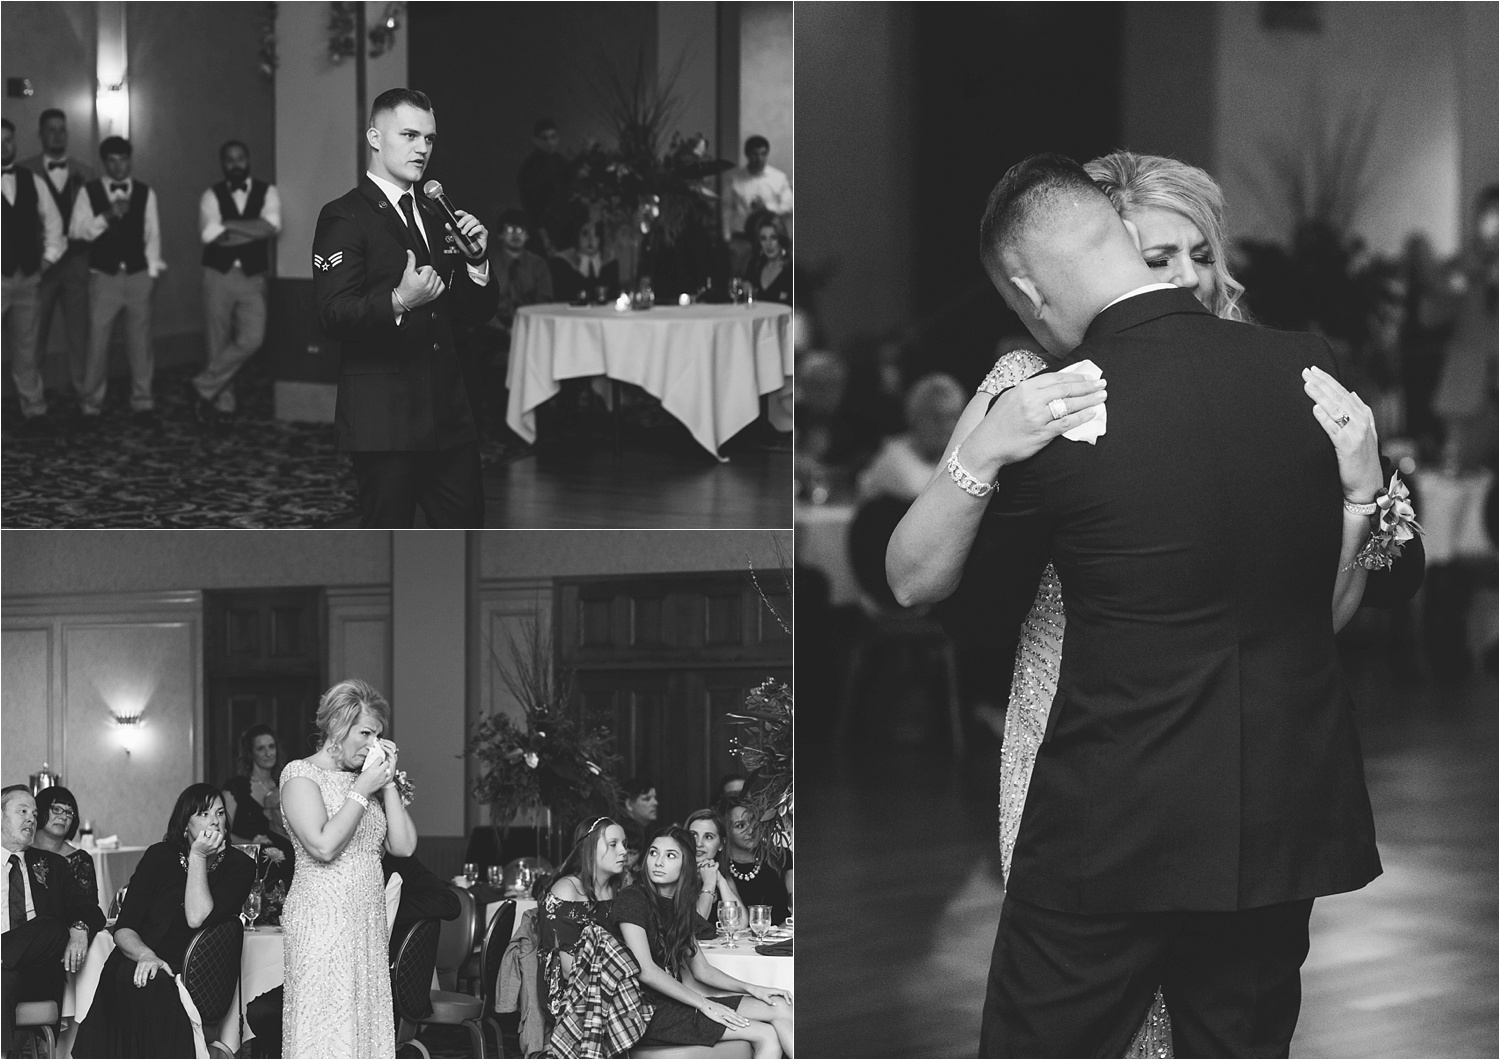 The Mother/Son dance was an emotional one.